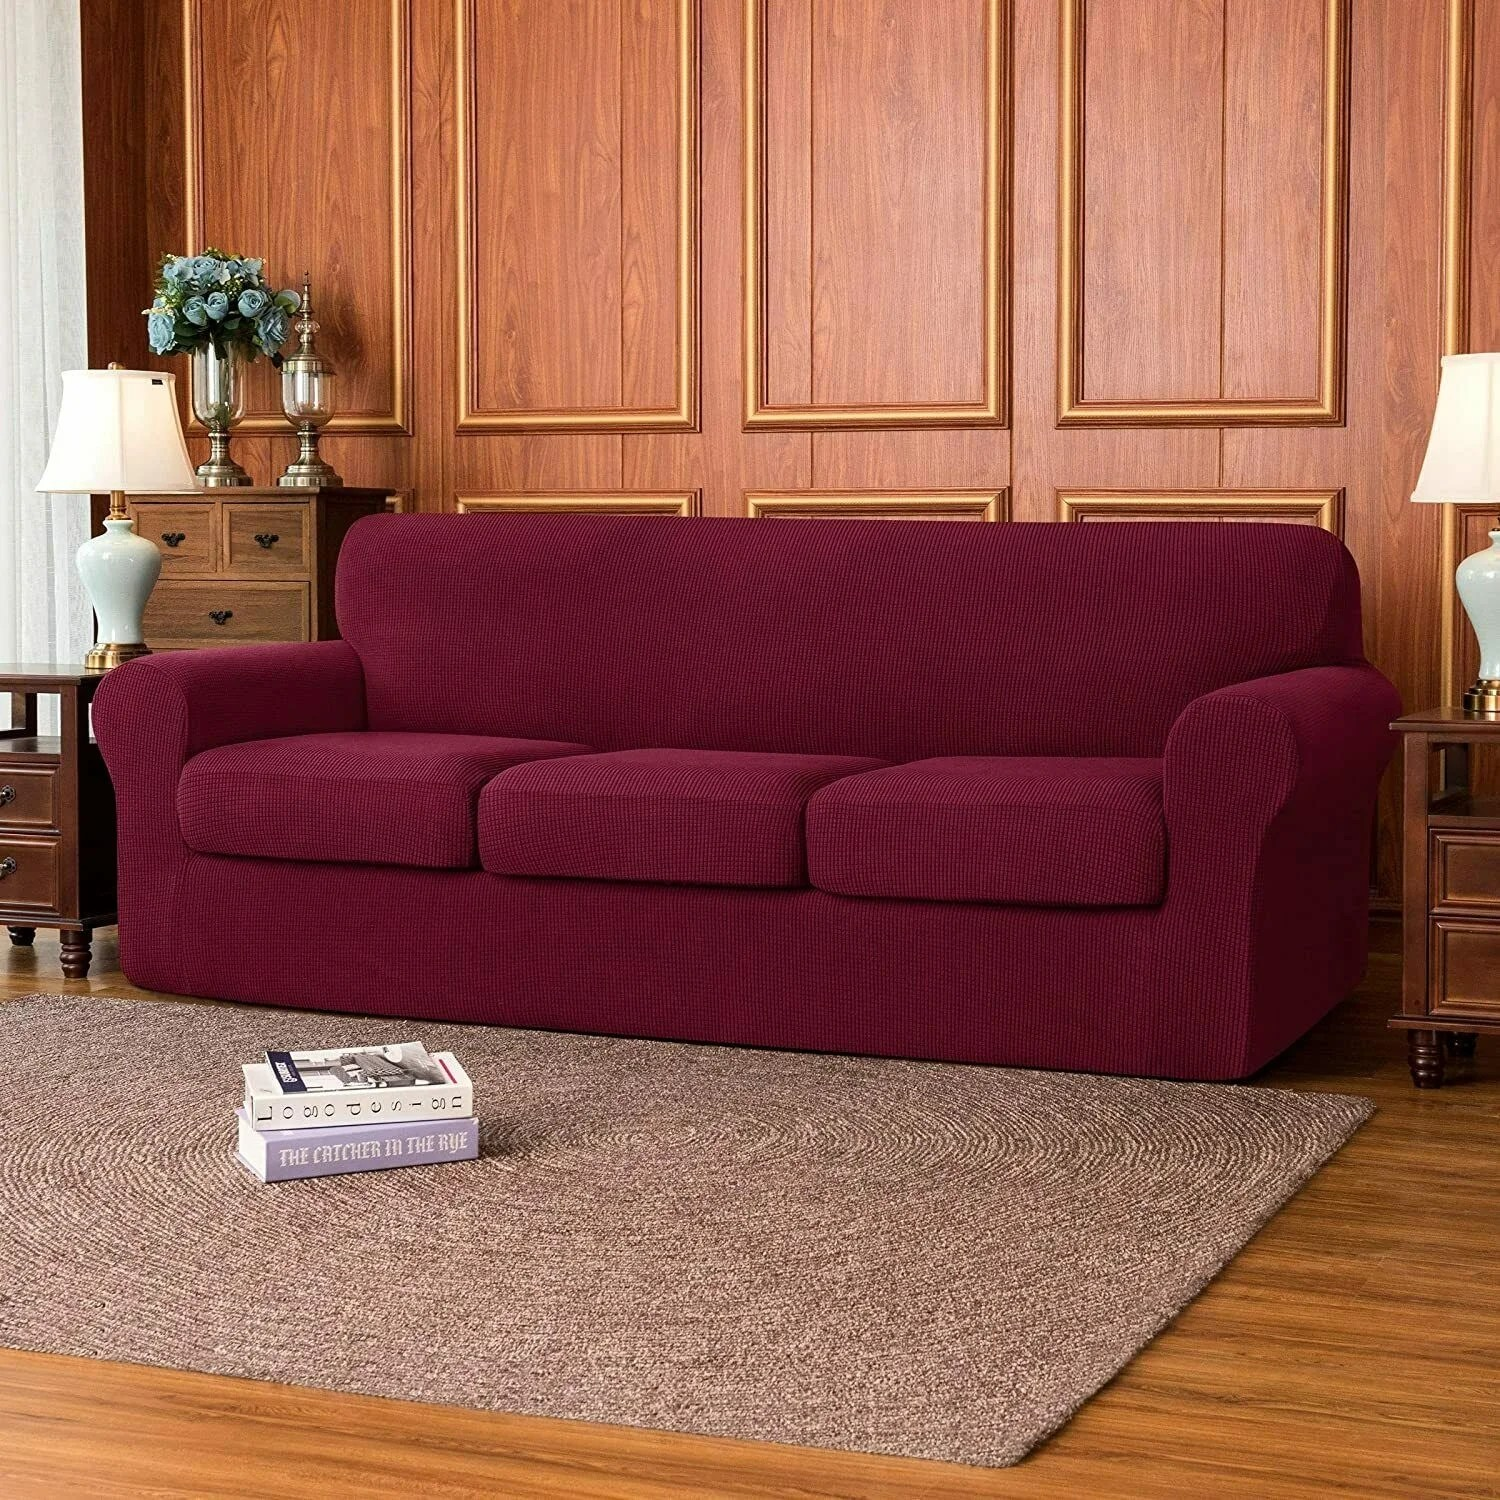 Subrtex Slipcover Stretch Sofa Cover With Separate Cushion Cover Overstock 32531842